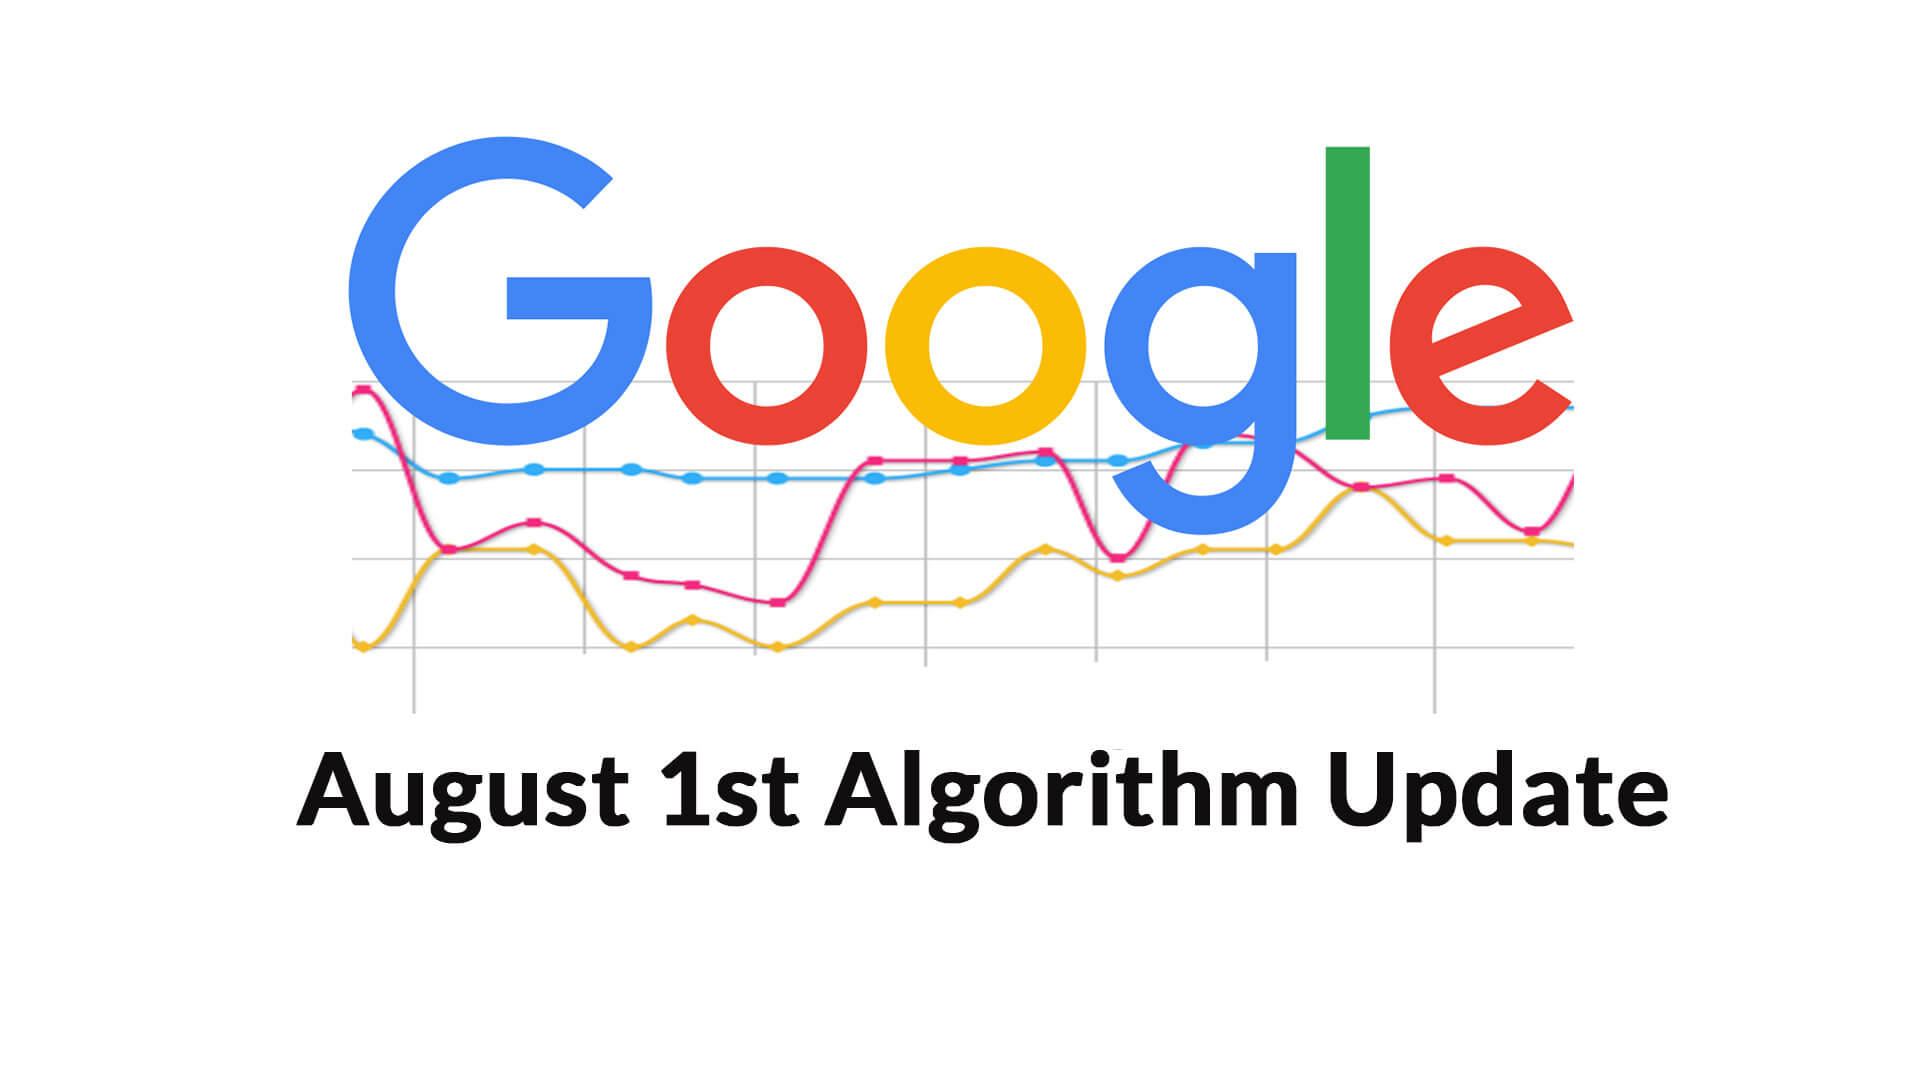 Google Confirm August 1st Algorithm Update